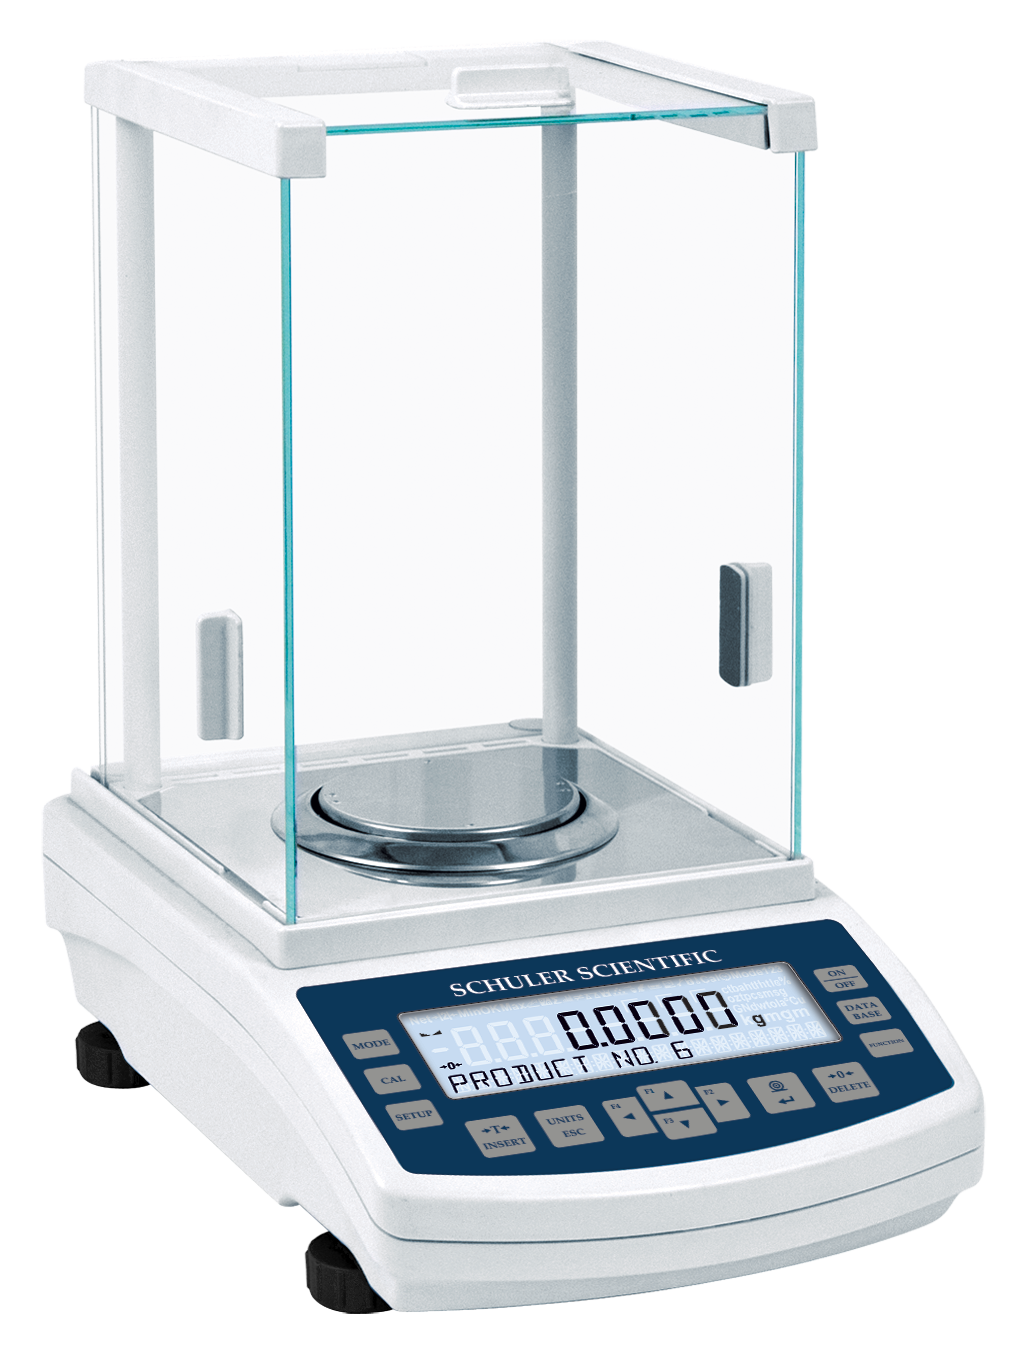 NTEP Approved Balances - Analytical A-Series | Laboratory ... for Balance Laboratory Apparatus  59jwn